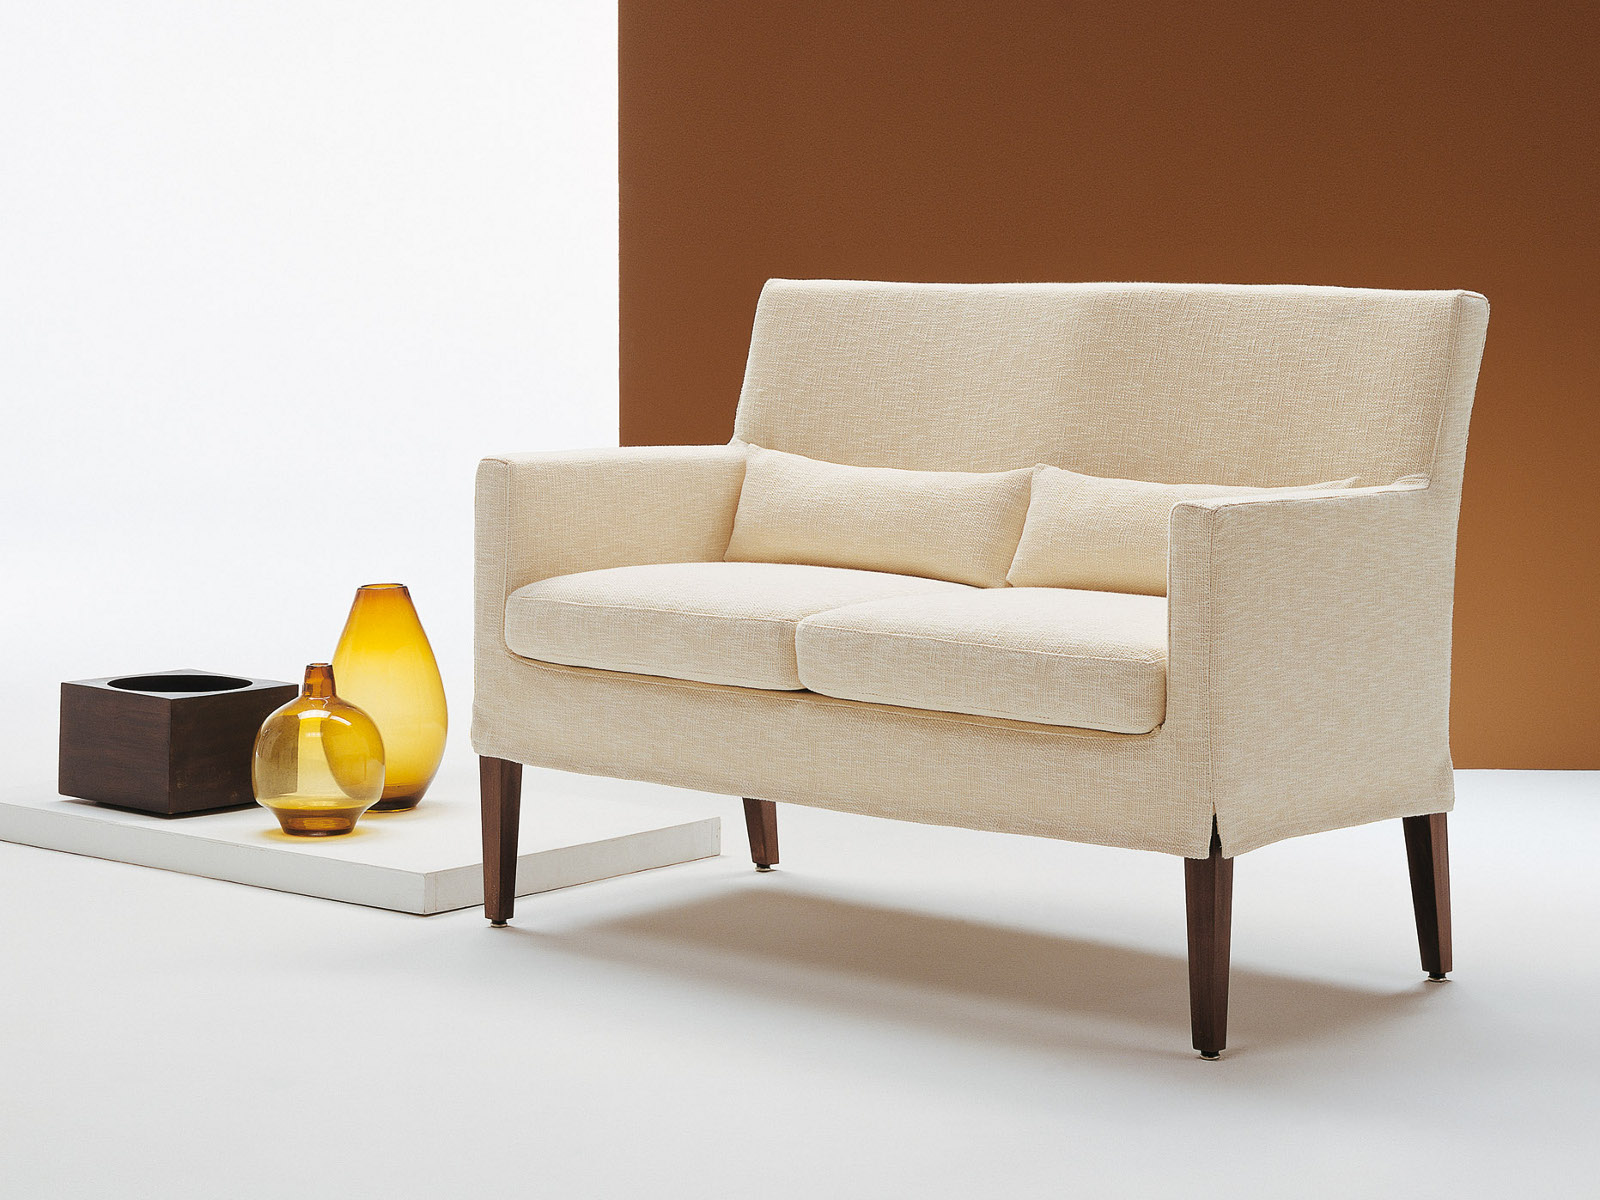 Betty small sofa by bodema design danilo bonfanti for Sofas originales baratos